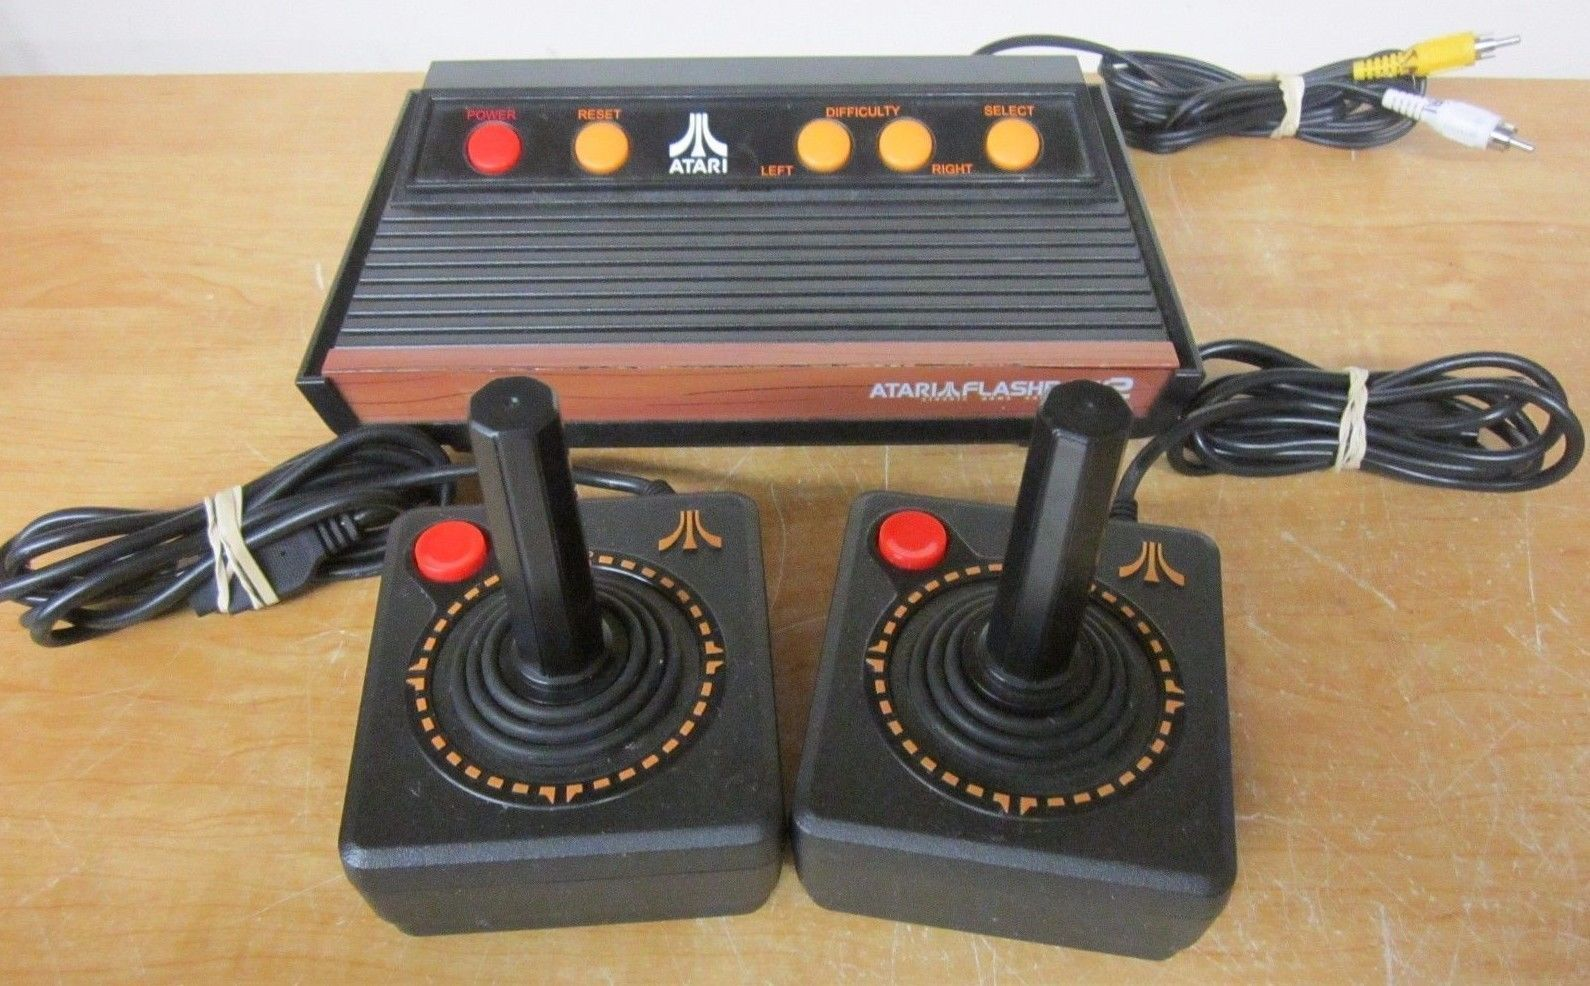 Atari flashback 2 console w 2 cx 40 joystick controllers tv video system 40 game for sale item - Atari game console for sale ...